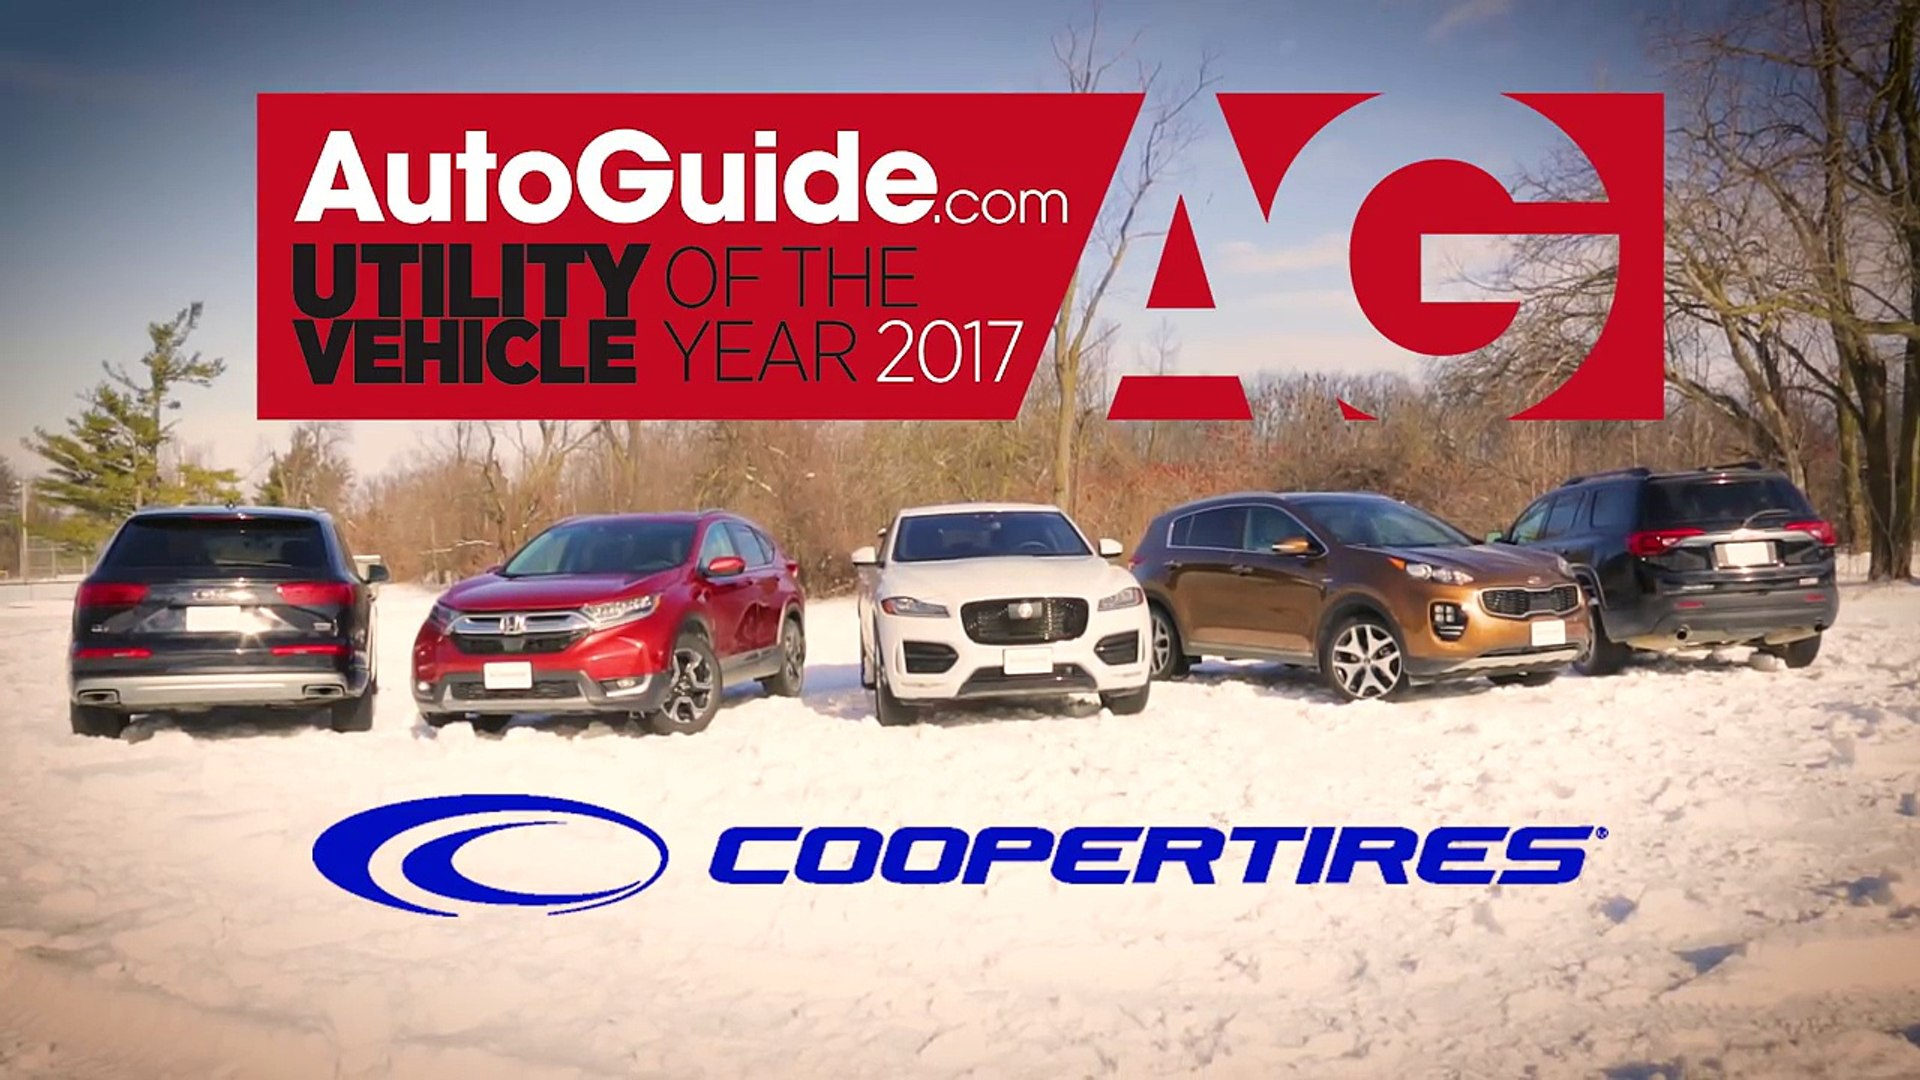 2017 Jaguar F-Pace - 2017 AutoGuide.com Utility Vehicle of the Year Contender - Part 2 of 6-KXUUsKLe